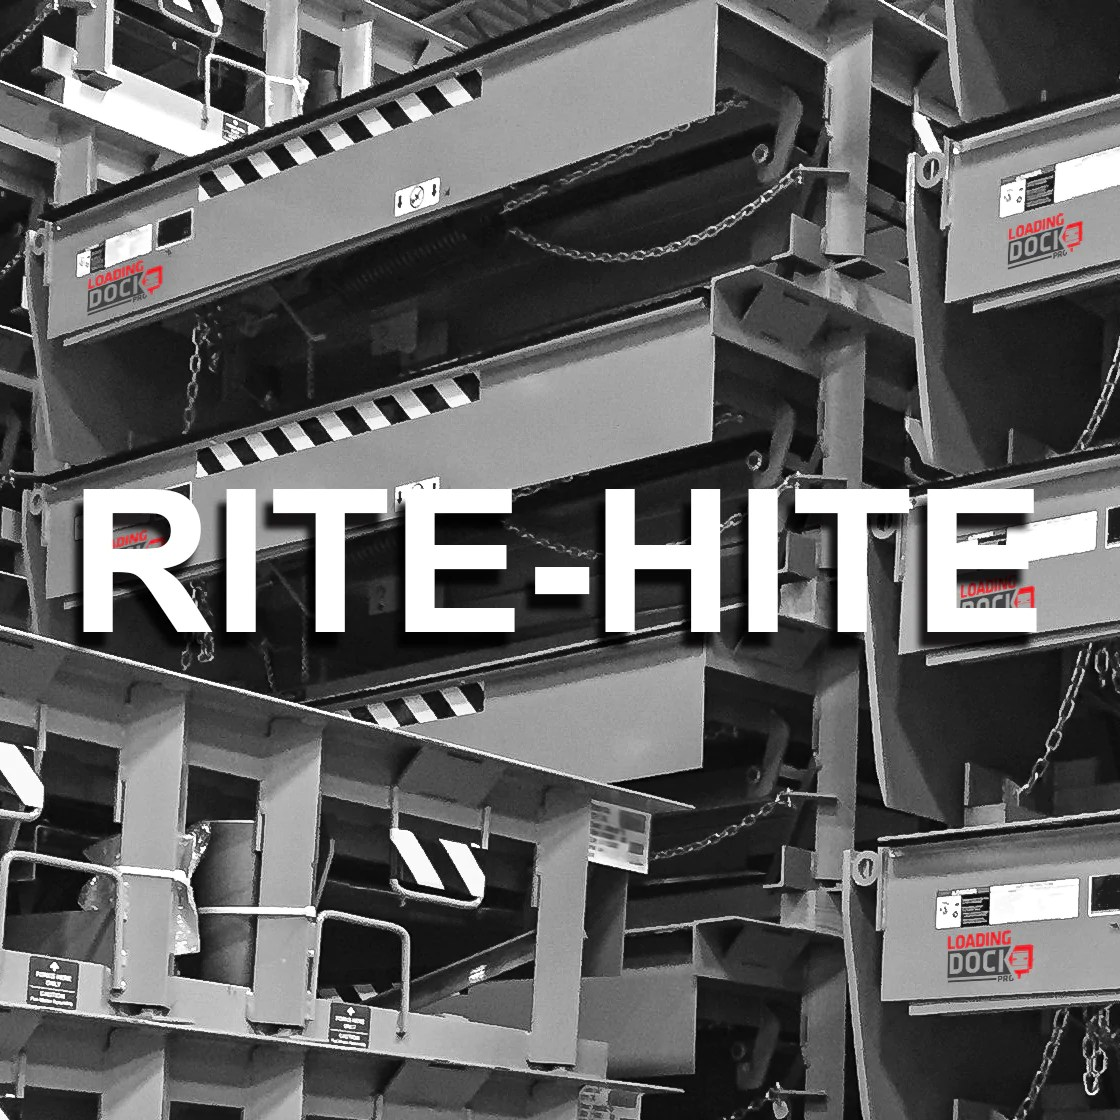 medium resolution of parts rite hite dock leveler trailer restraint in stock loading dock pro parts aftermarket products